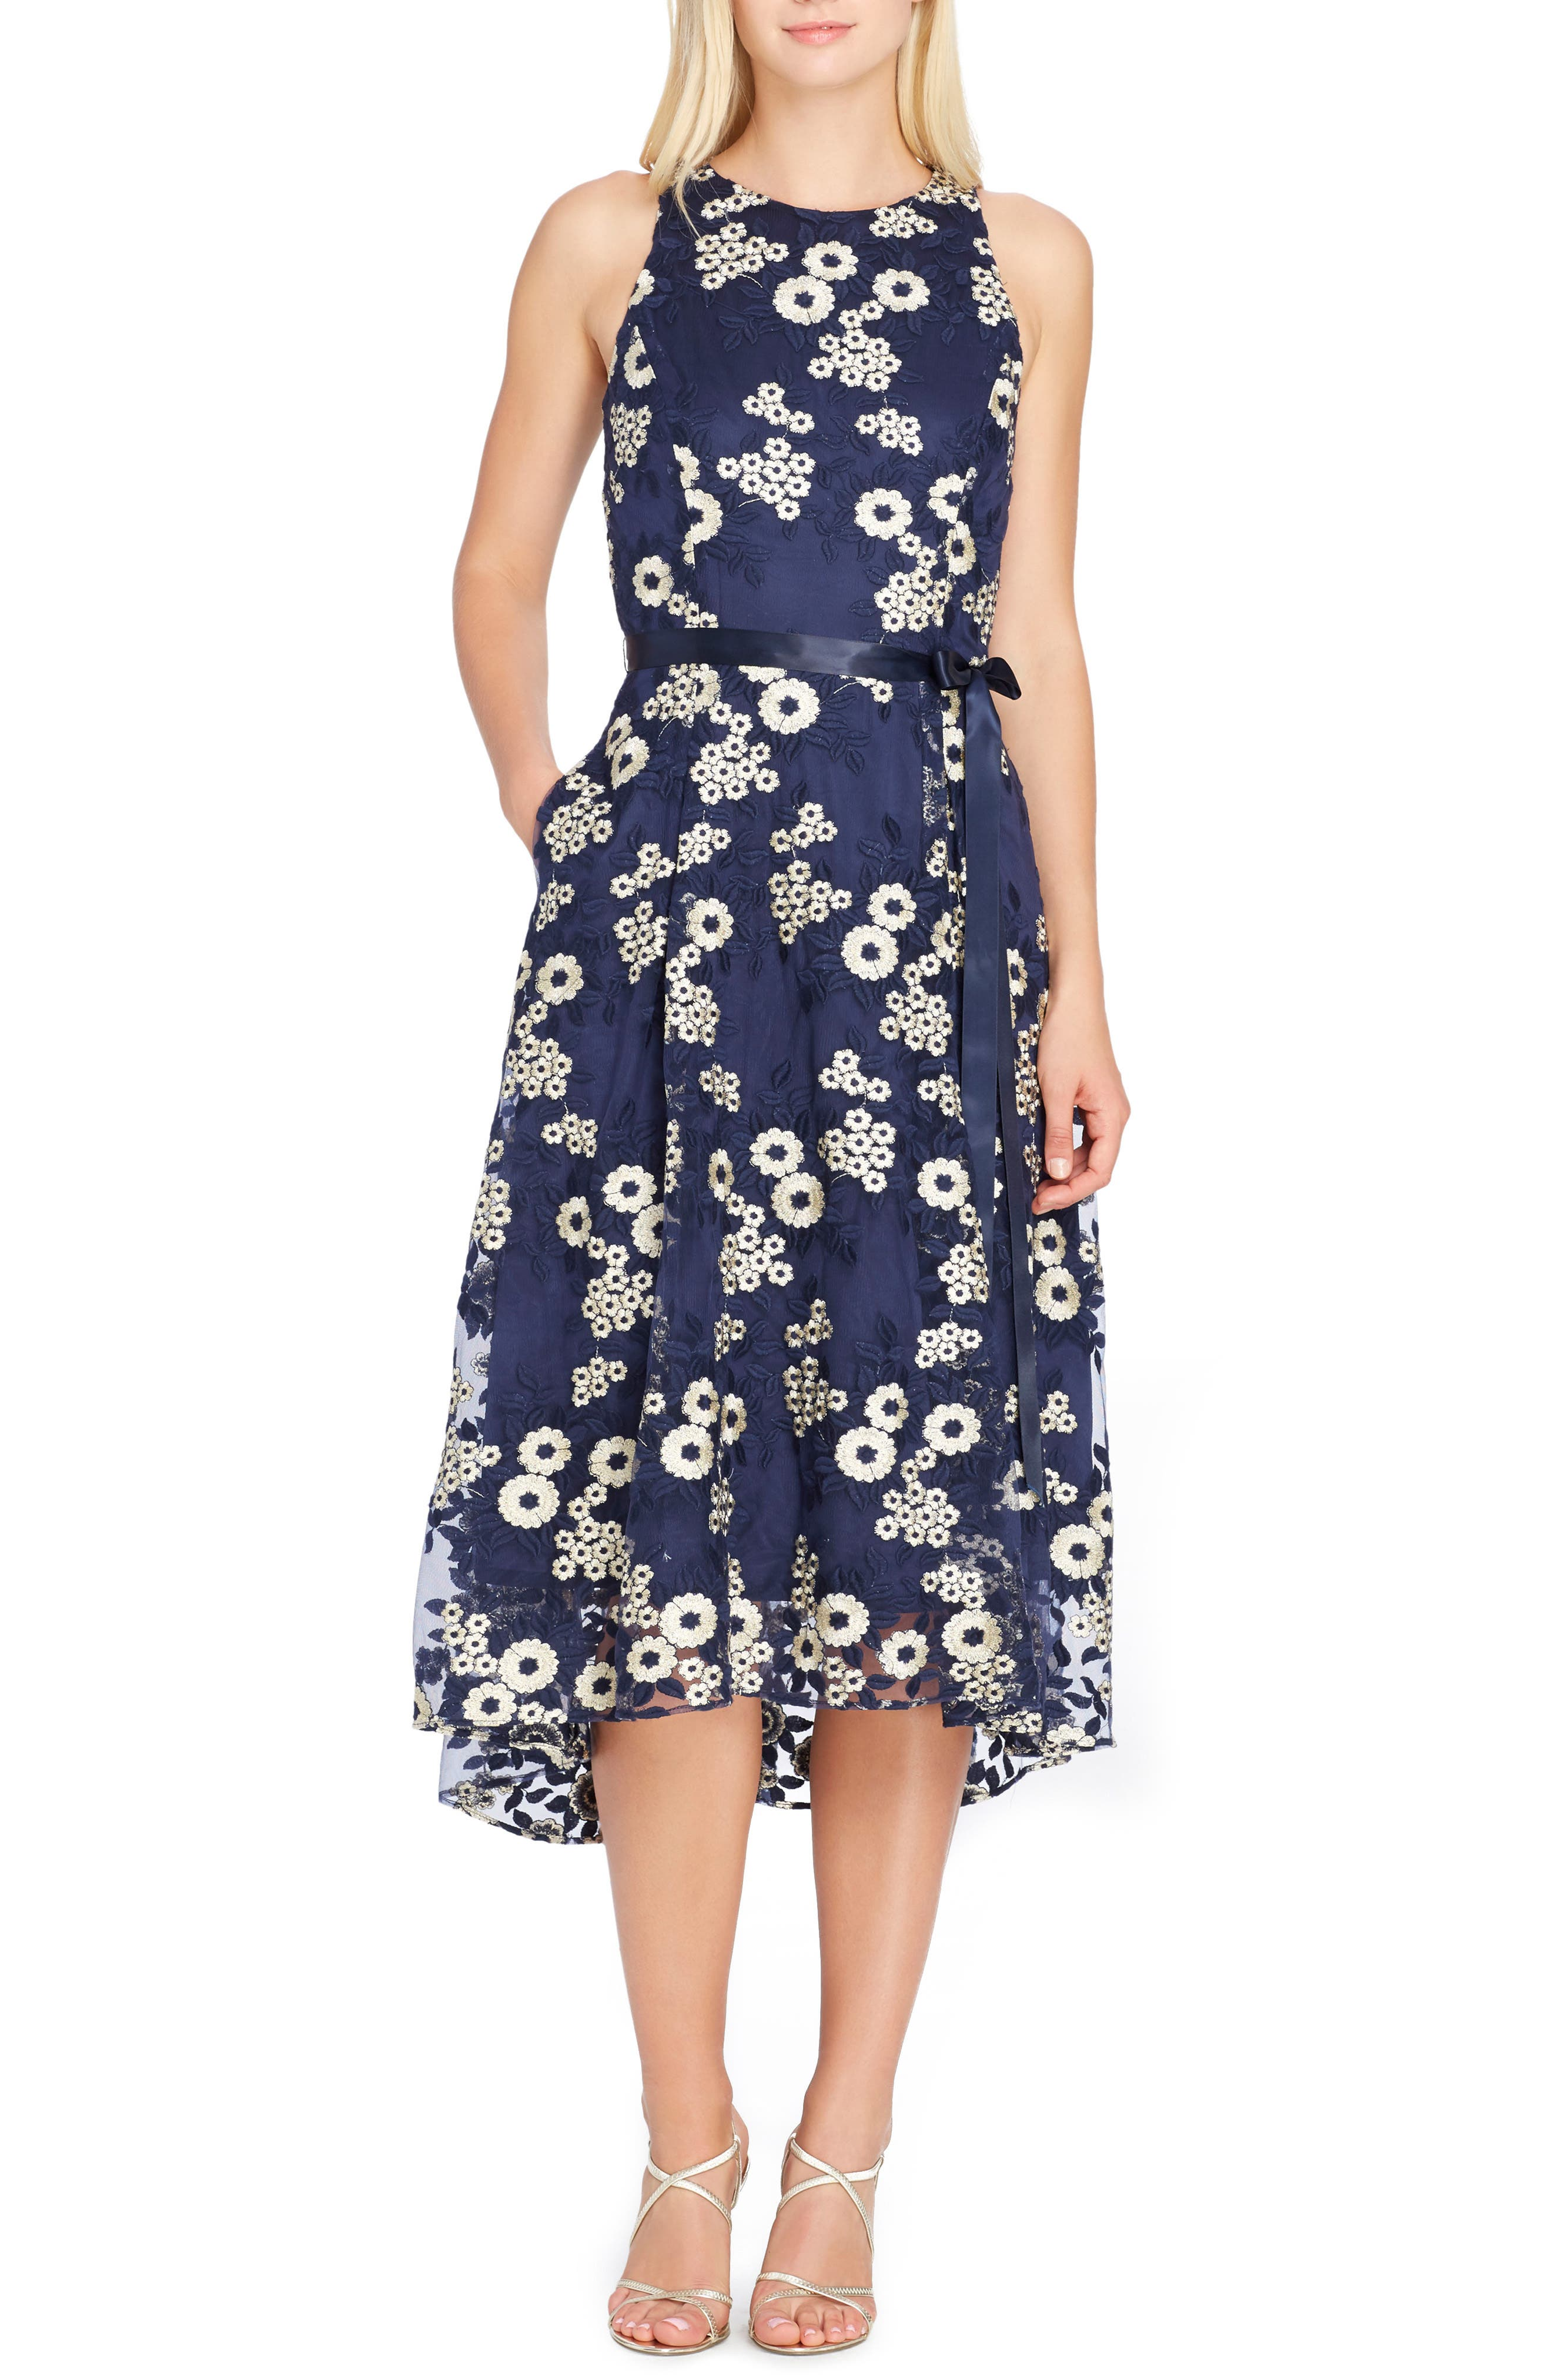 TAHARI Floral Embroidered Dress, Main, color, NAVY/ GOLD